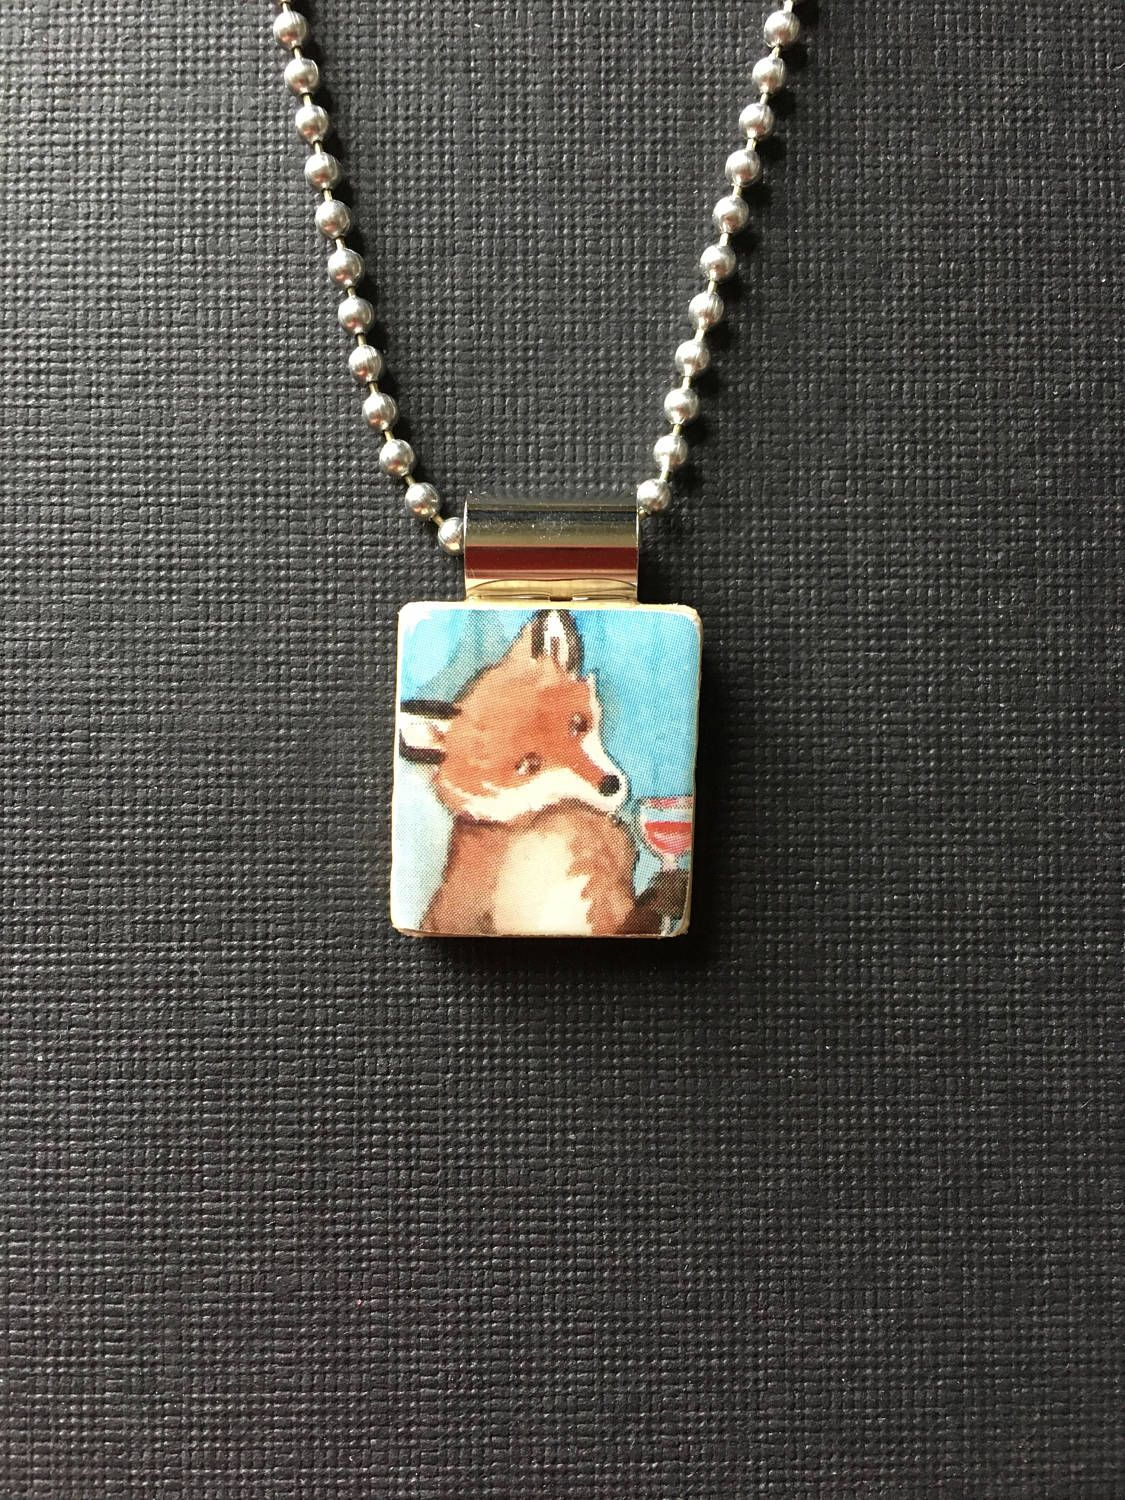 Fox pendant, Handmade wine pendant, fox drinking wine necklace, wine lovers gift, handmade fox jewelry, recycled scrabble tile jewelry by InSmallPackages on Etsy